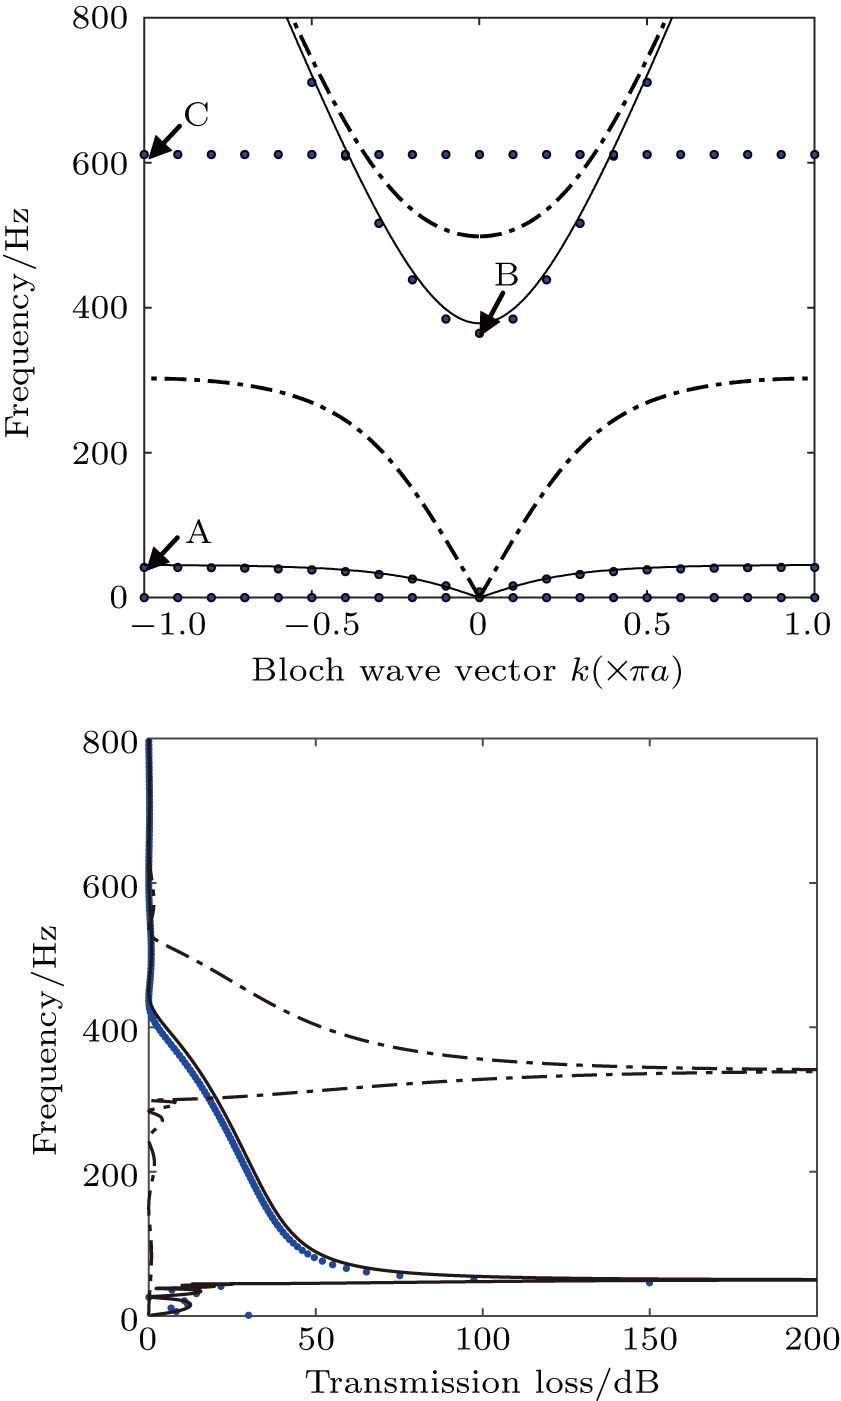 Propagation of acoustic waves in a fluid-filled pipe with periodic